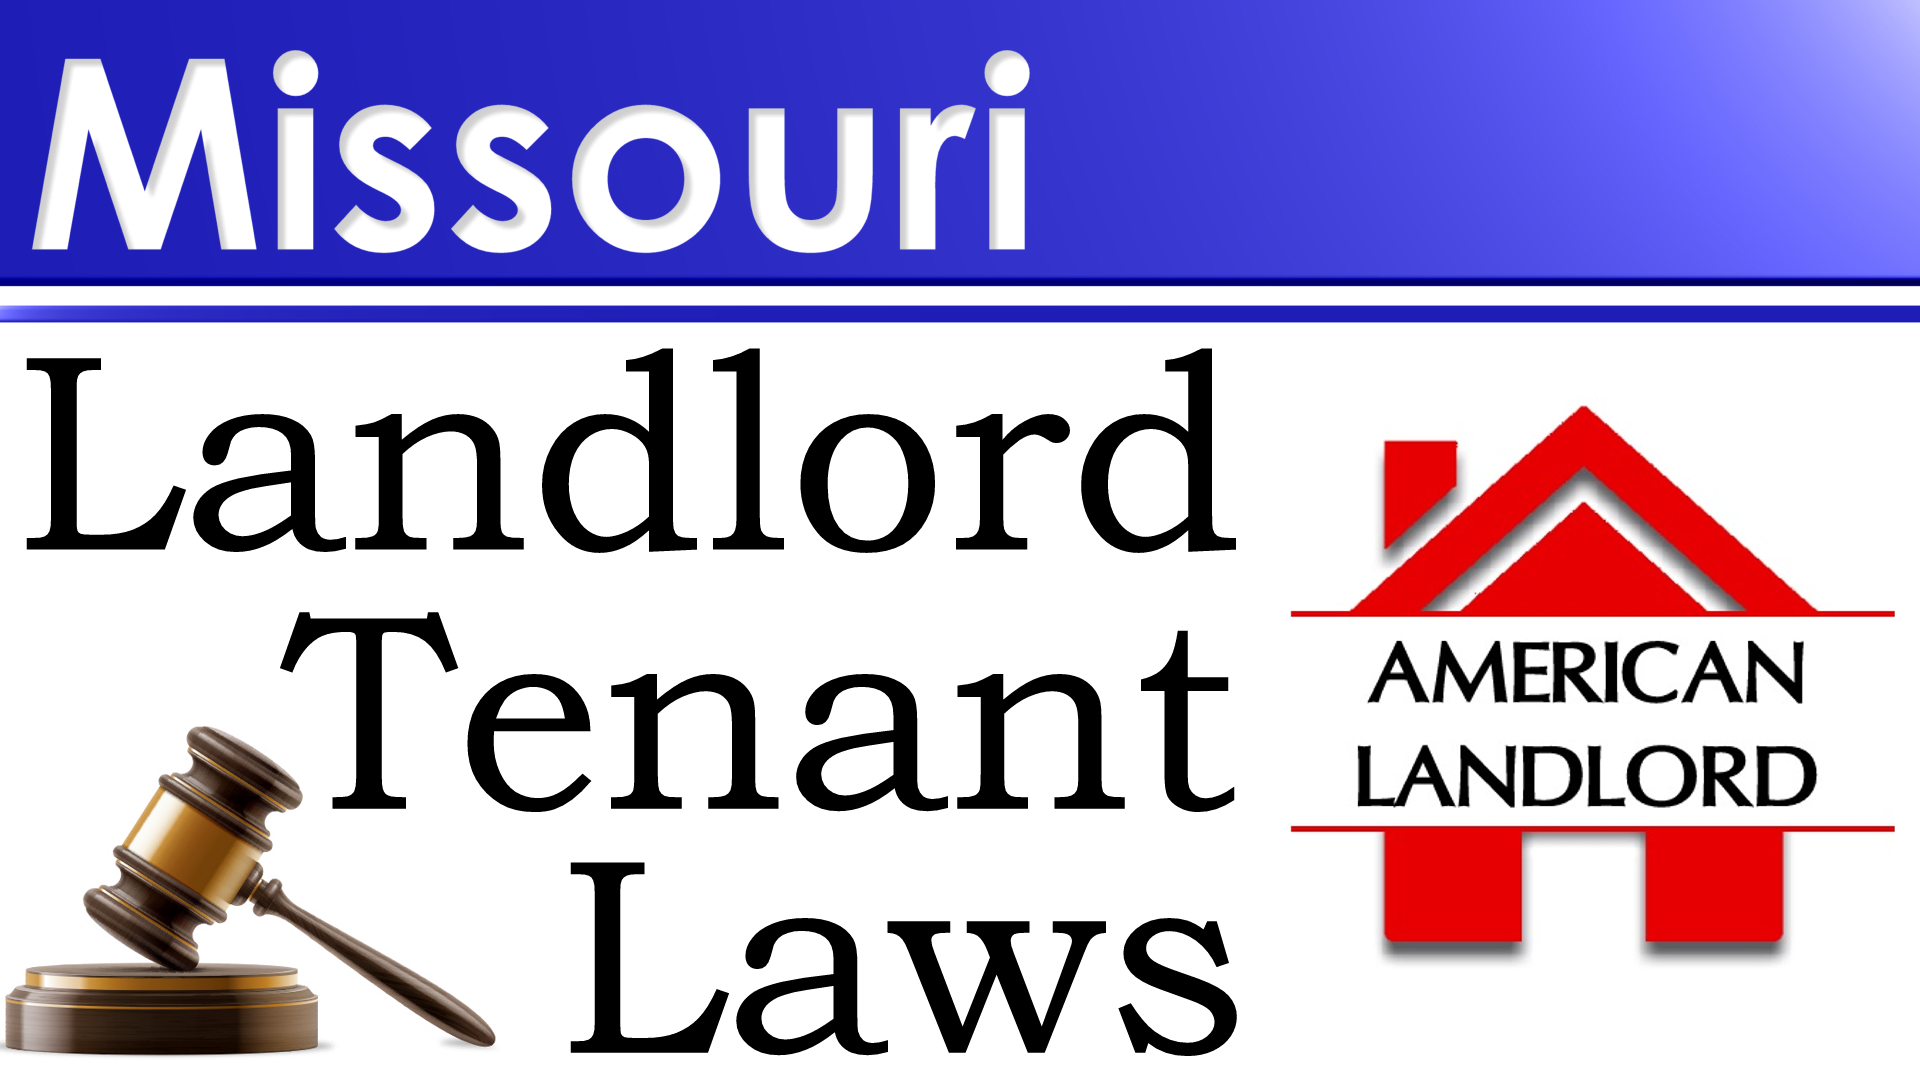 Missouri landlord tenant law